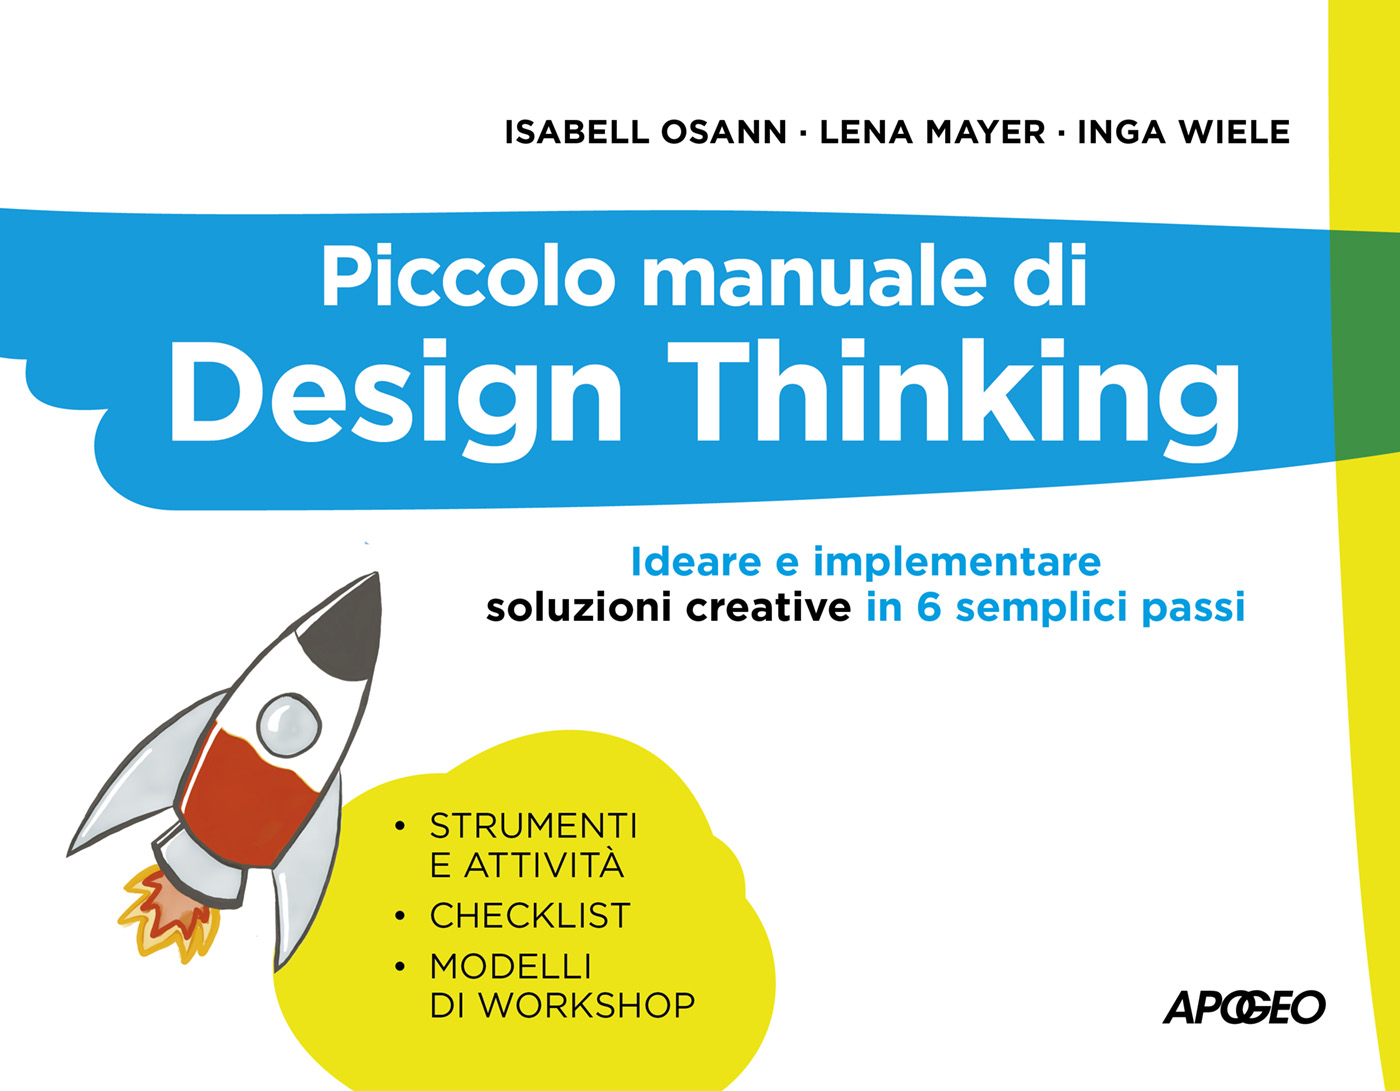 Piccolo manuale di Design Thinking